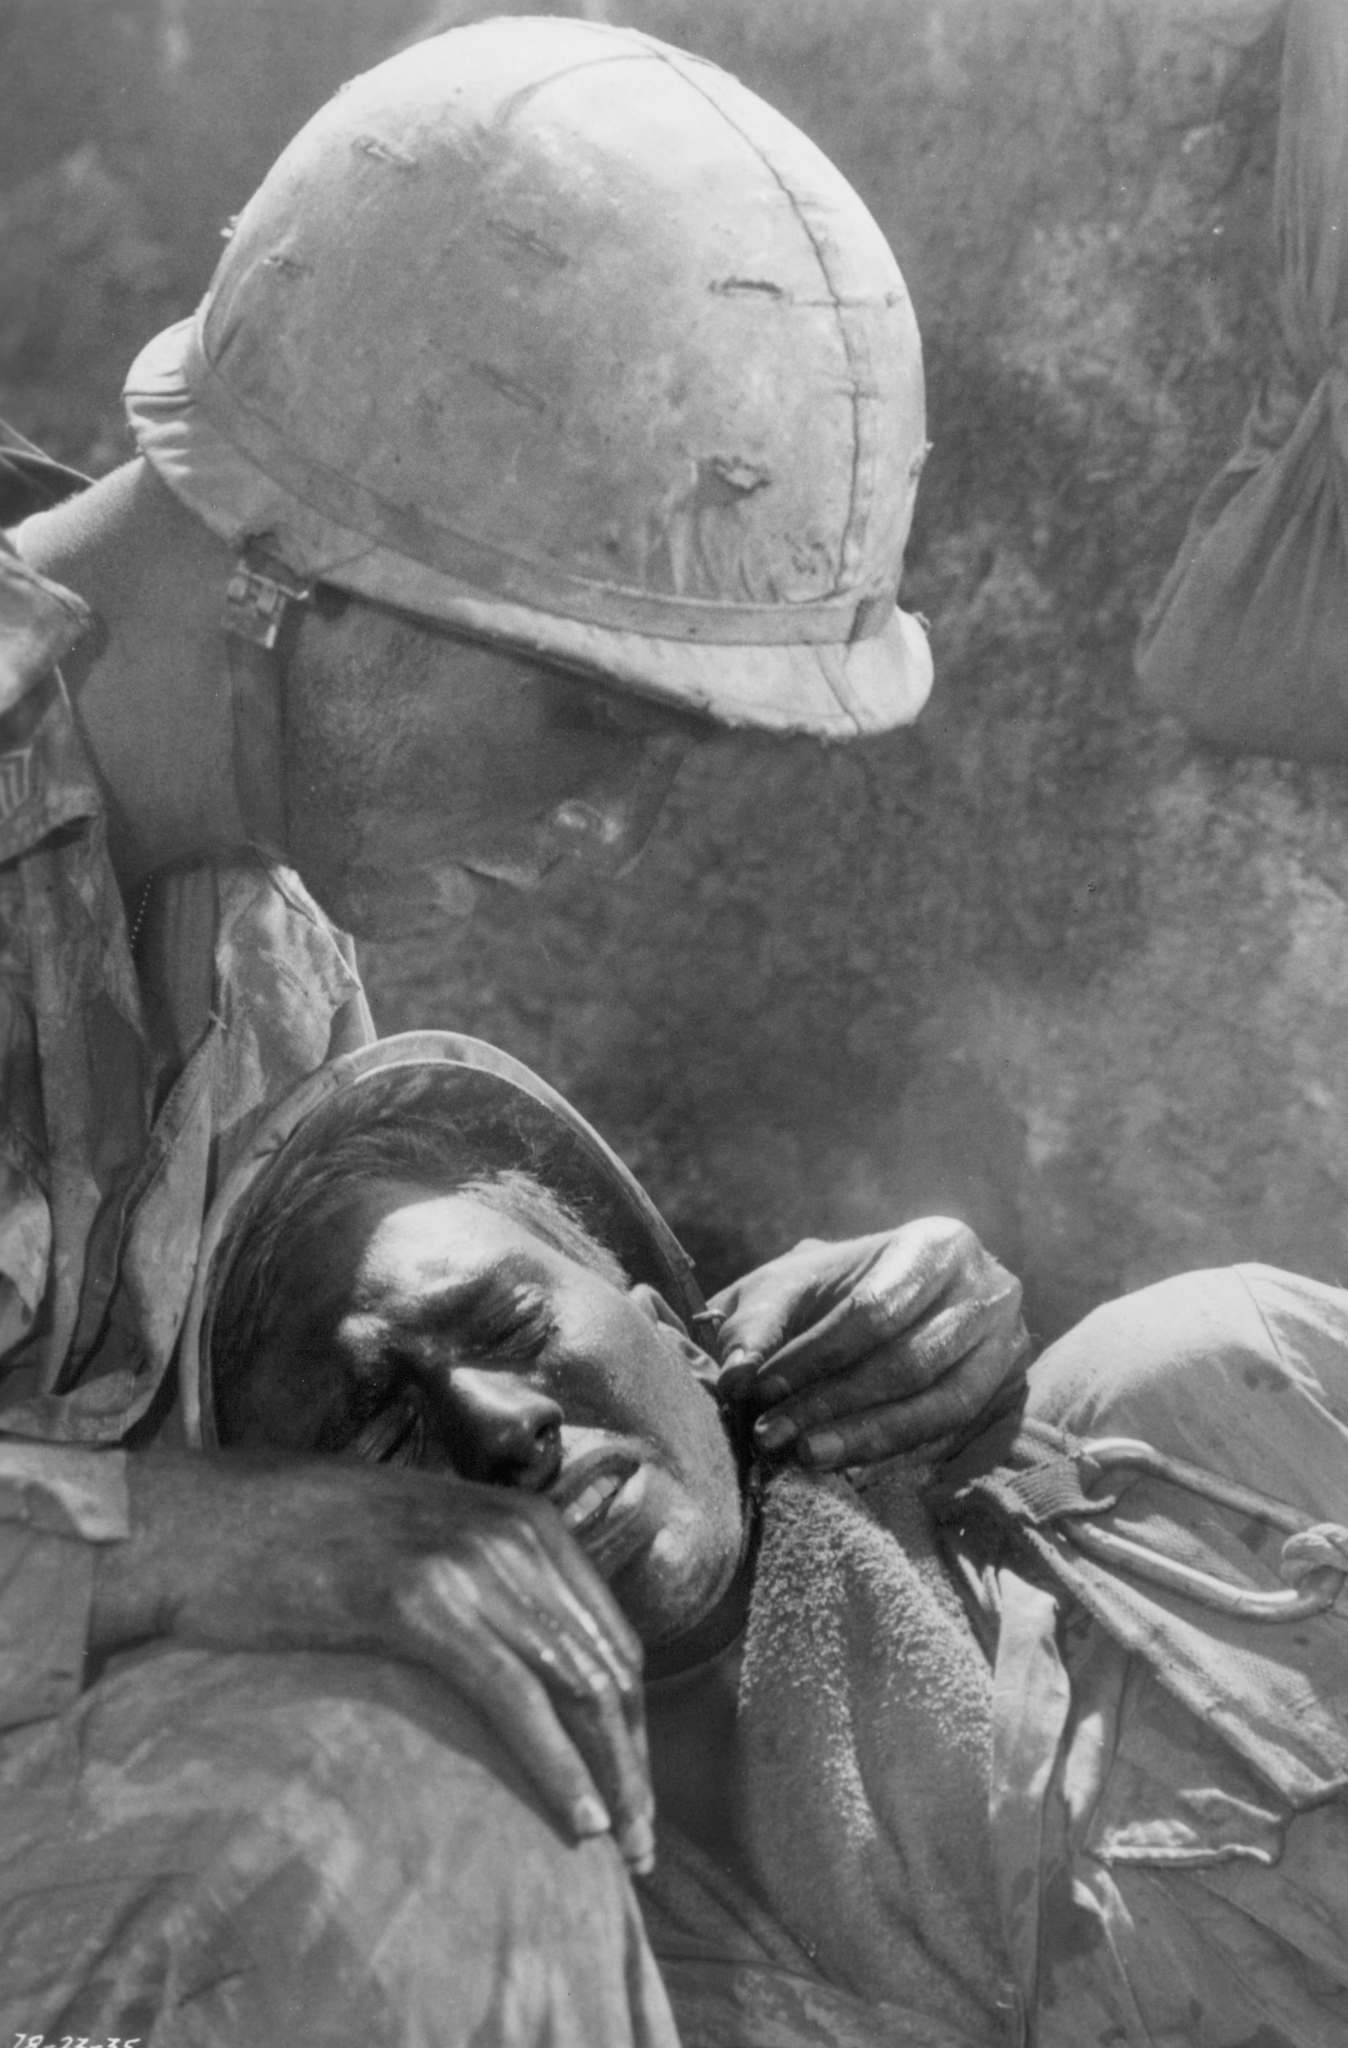 Dylan McDermott and Anthony Barrile in Hamburger Hill (1987)